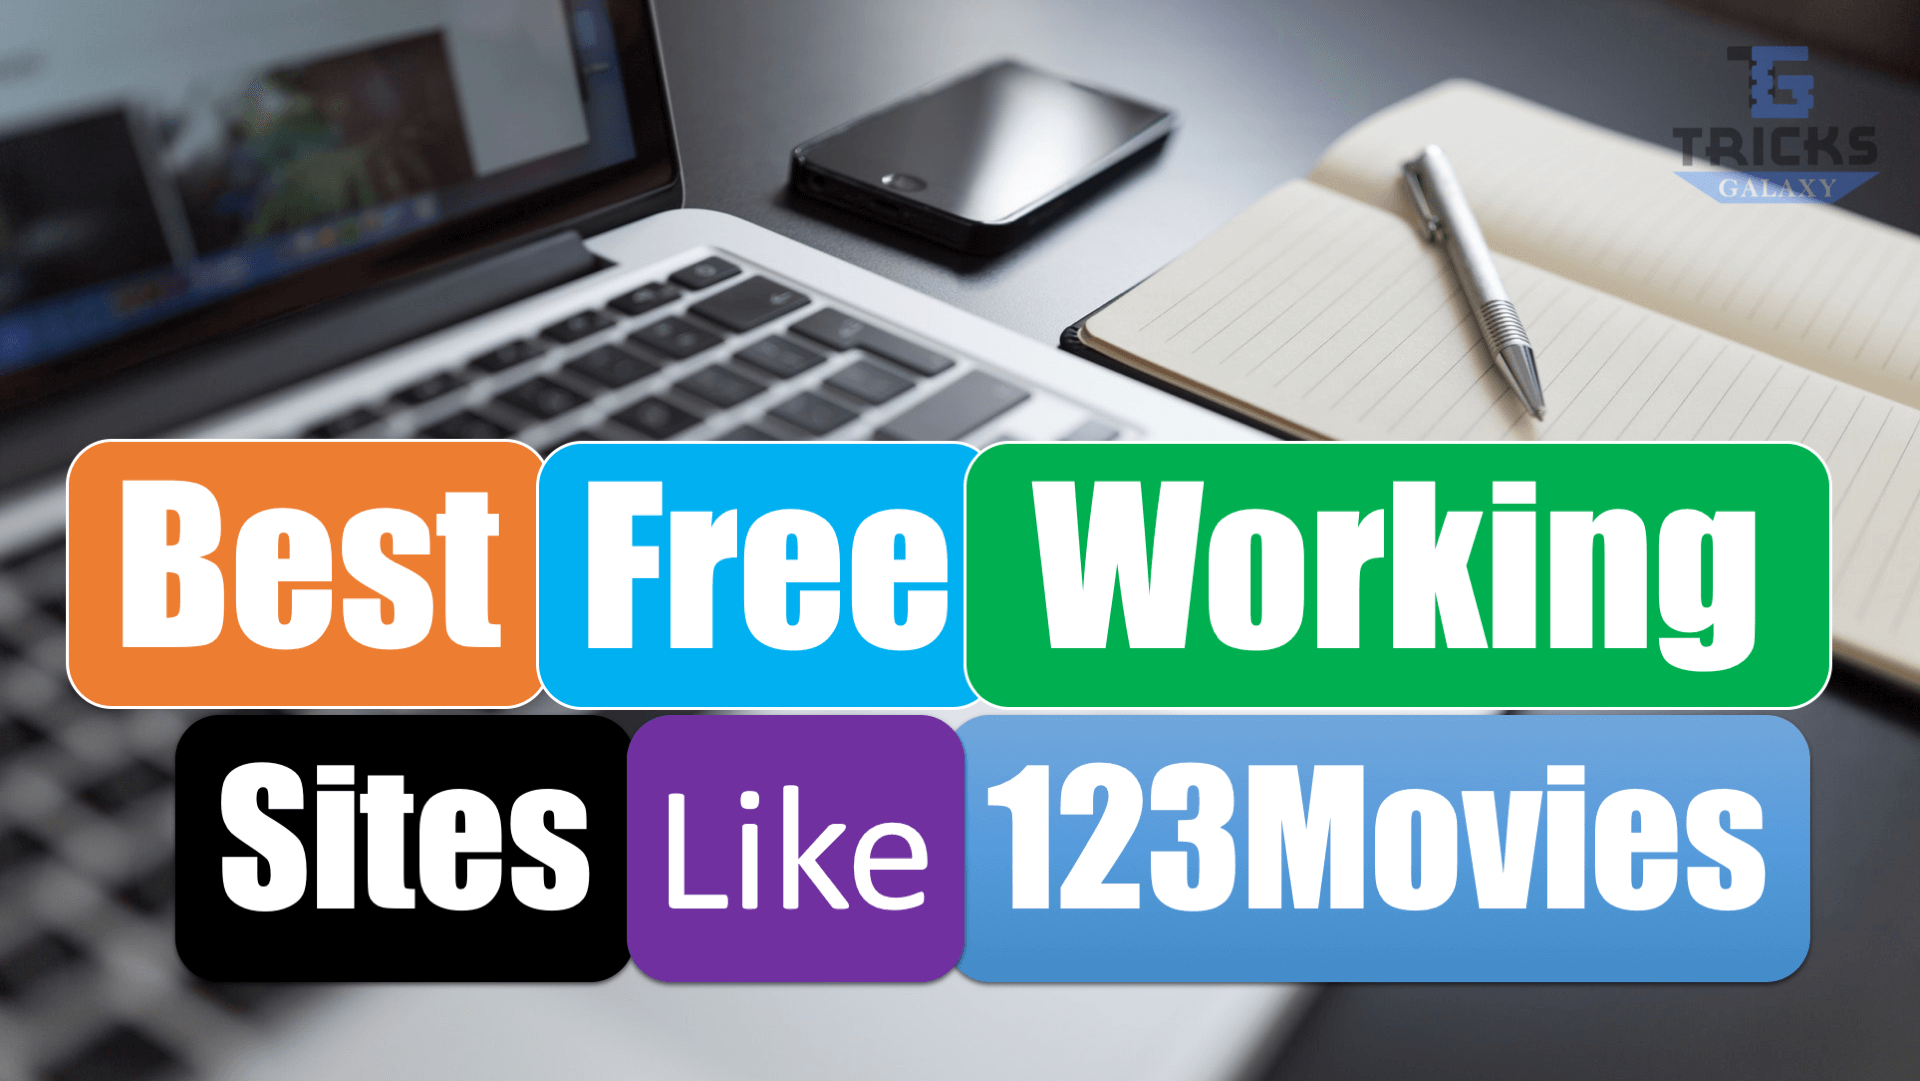 Best Free Sites like 123Movies